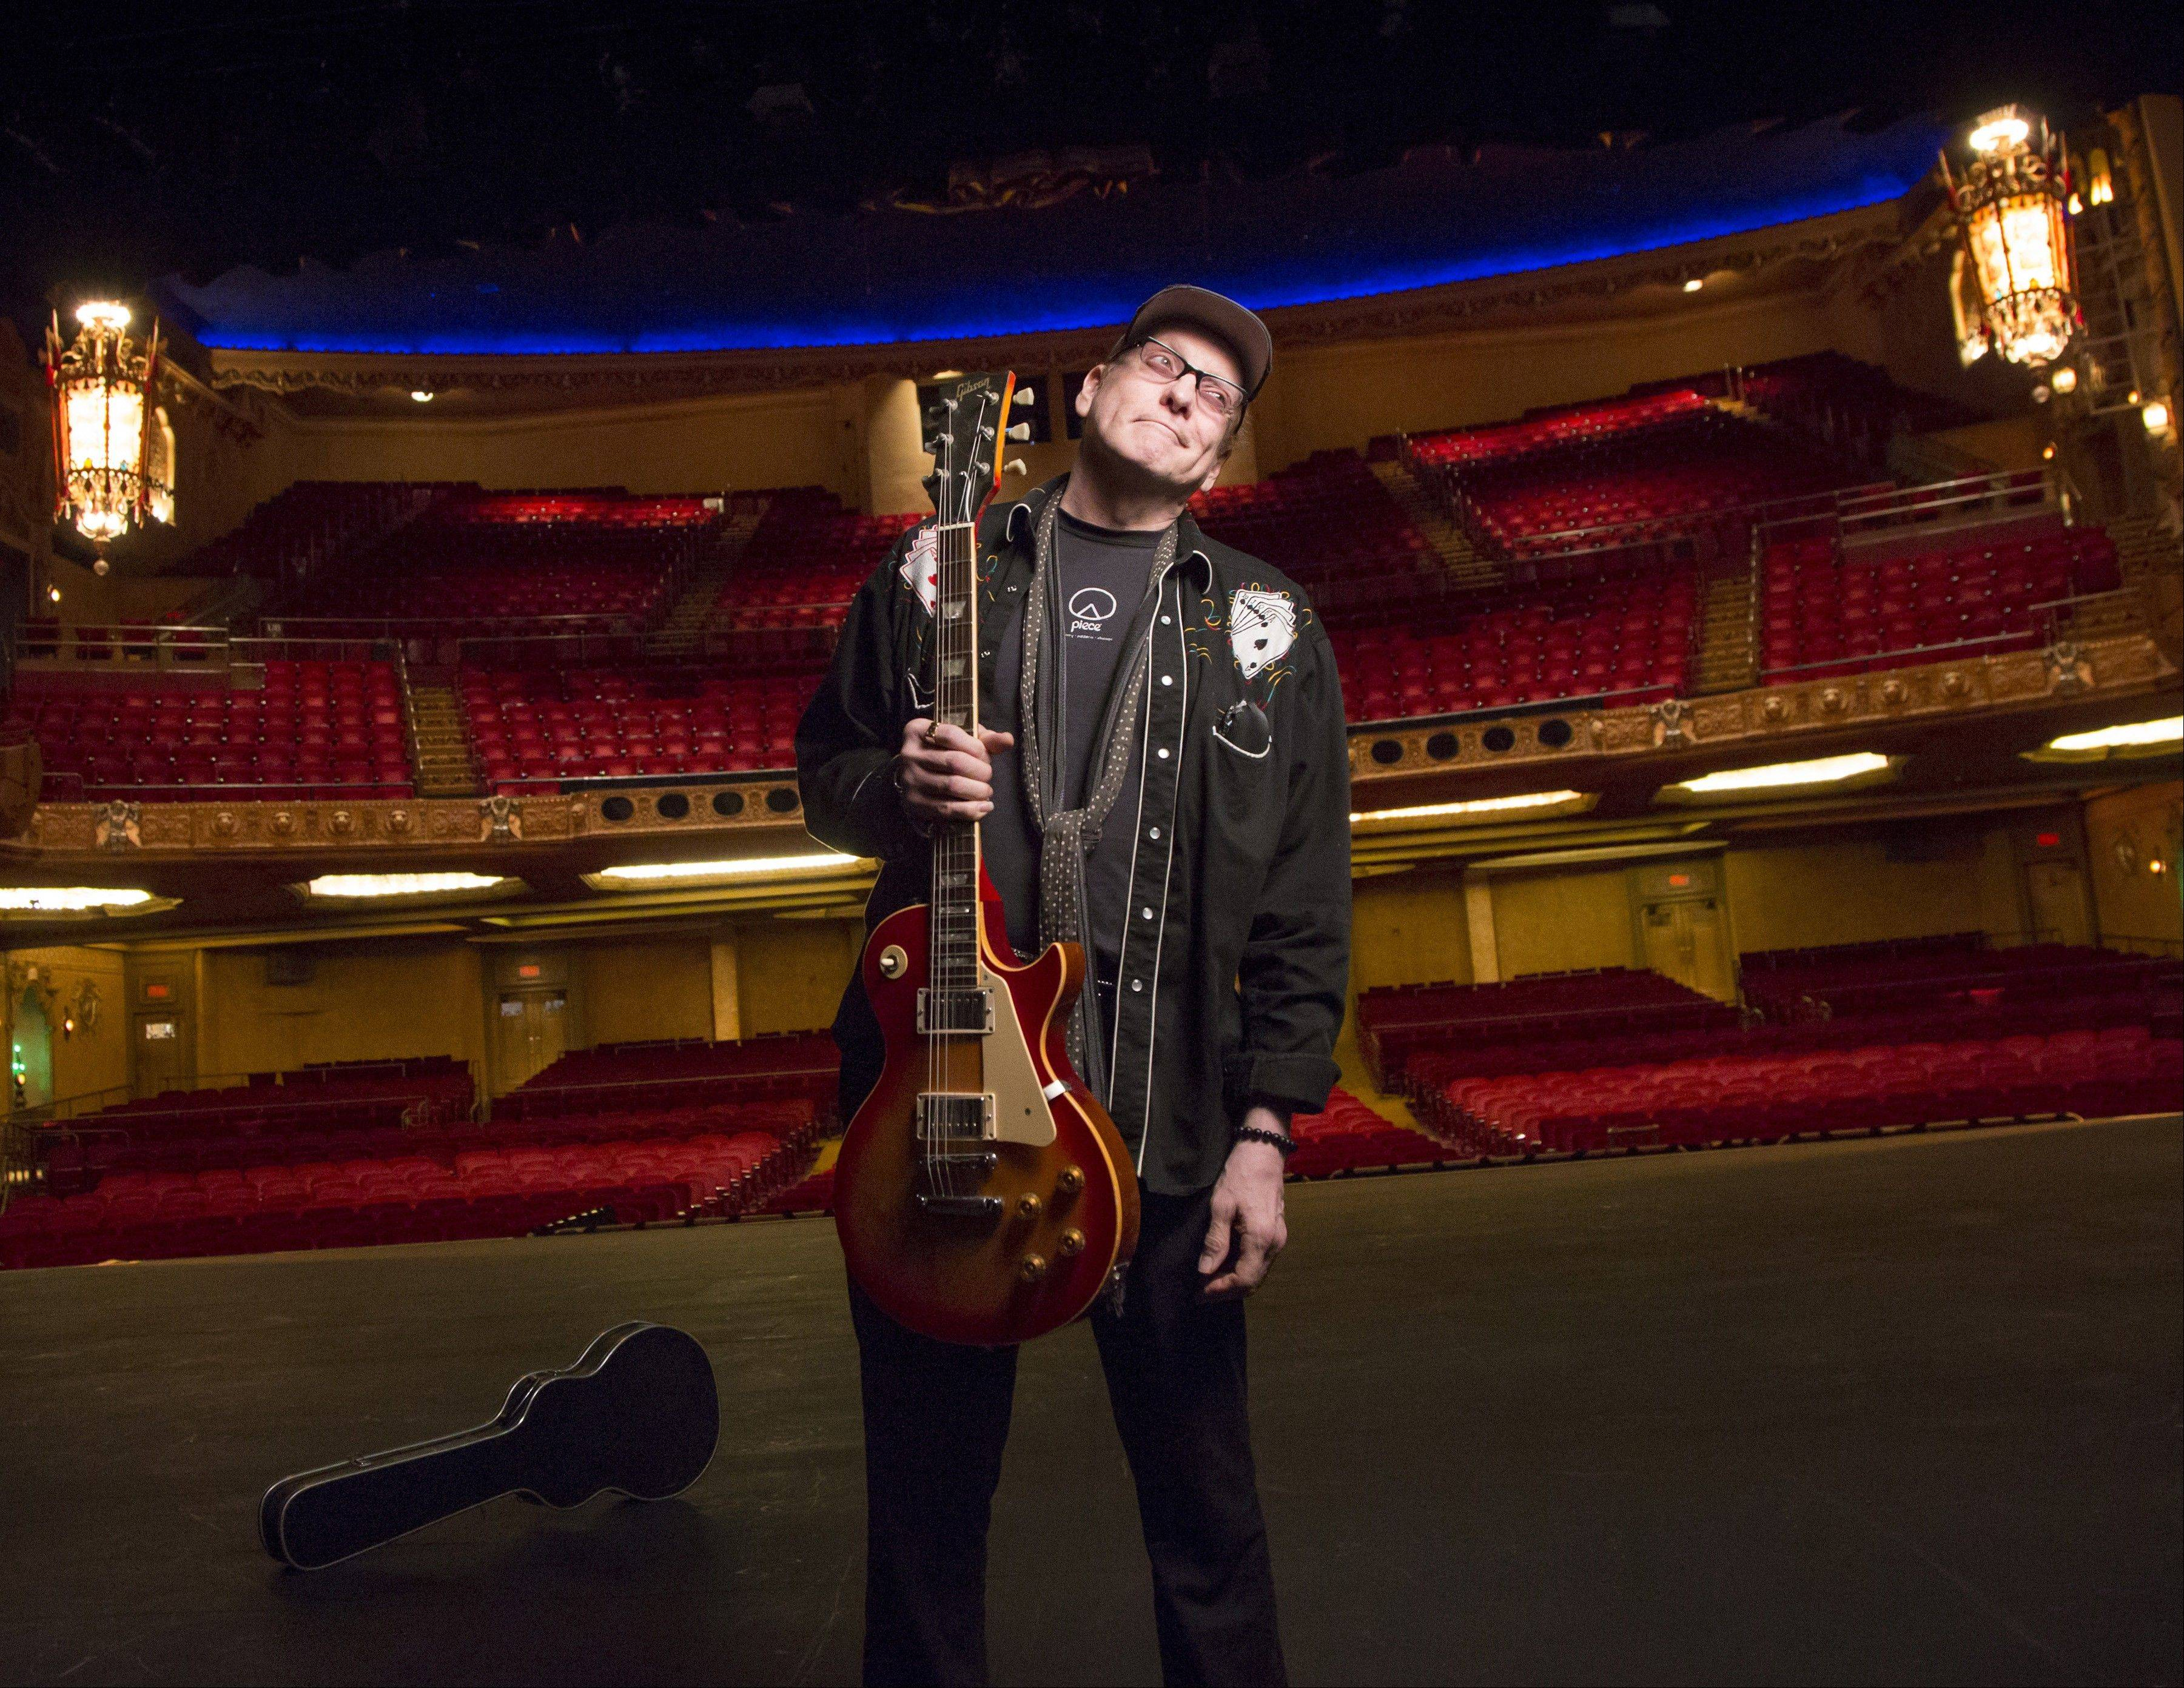 Rick Nielsen and his band, Cheap Trick, have performed numerous times in Rockford. This weekend they come a little closer to home for a gig at the Arcada Theatre in St. Charles.